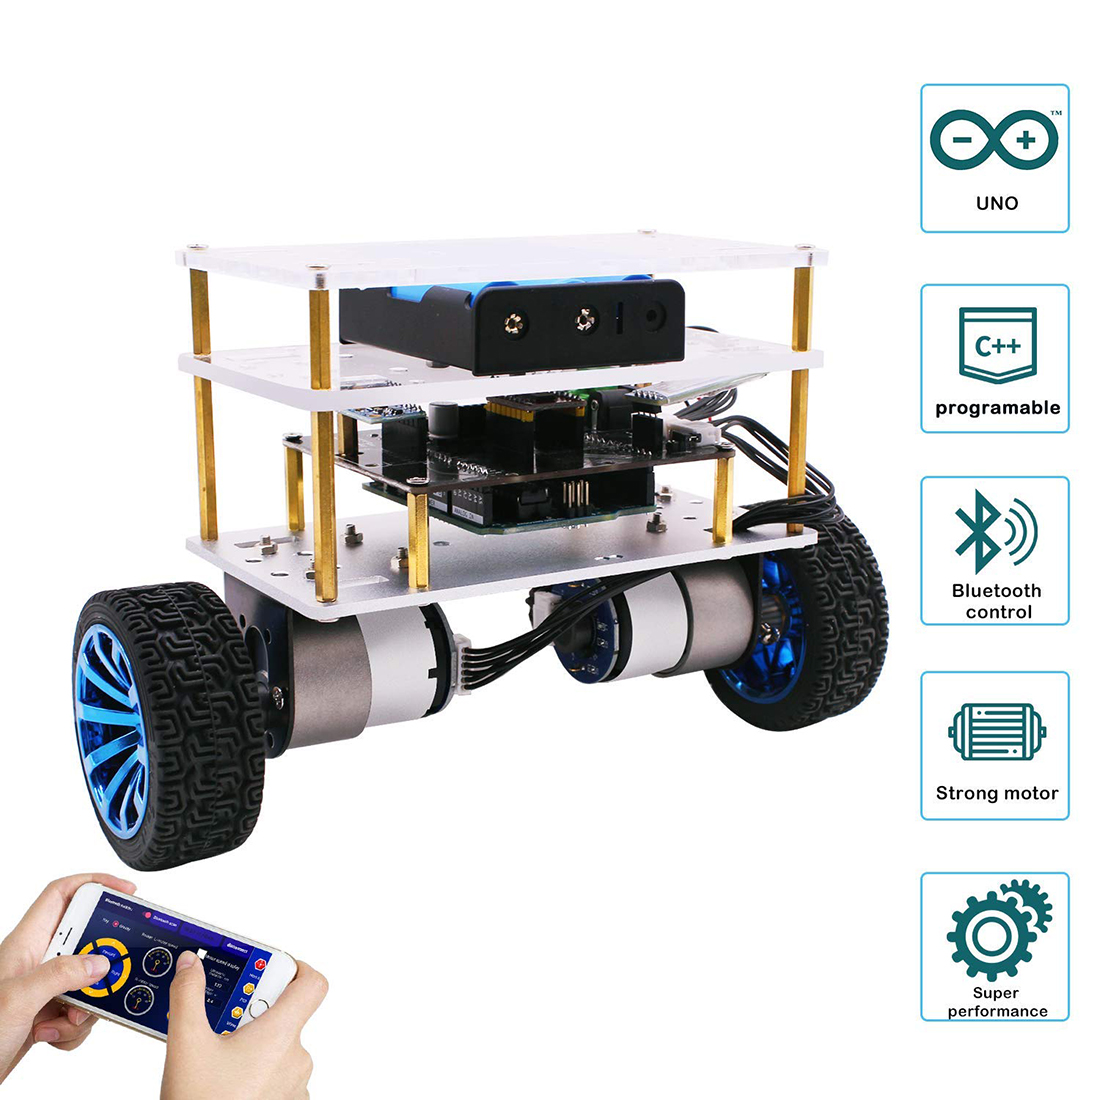 Balance Robot Car Compatible with Arduino Electronics Programmable Kit Education Robotics Support C Language for Kids (R3)Balance Robot Car Compatible with Arduino Electronics Programmable Kit Education Robotics Support C Language for Kids (R3)